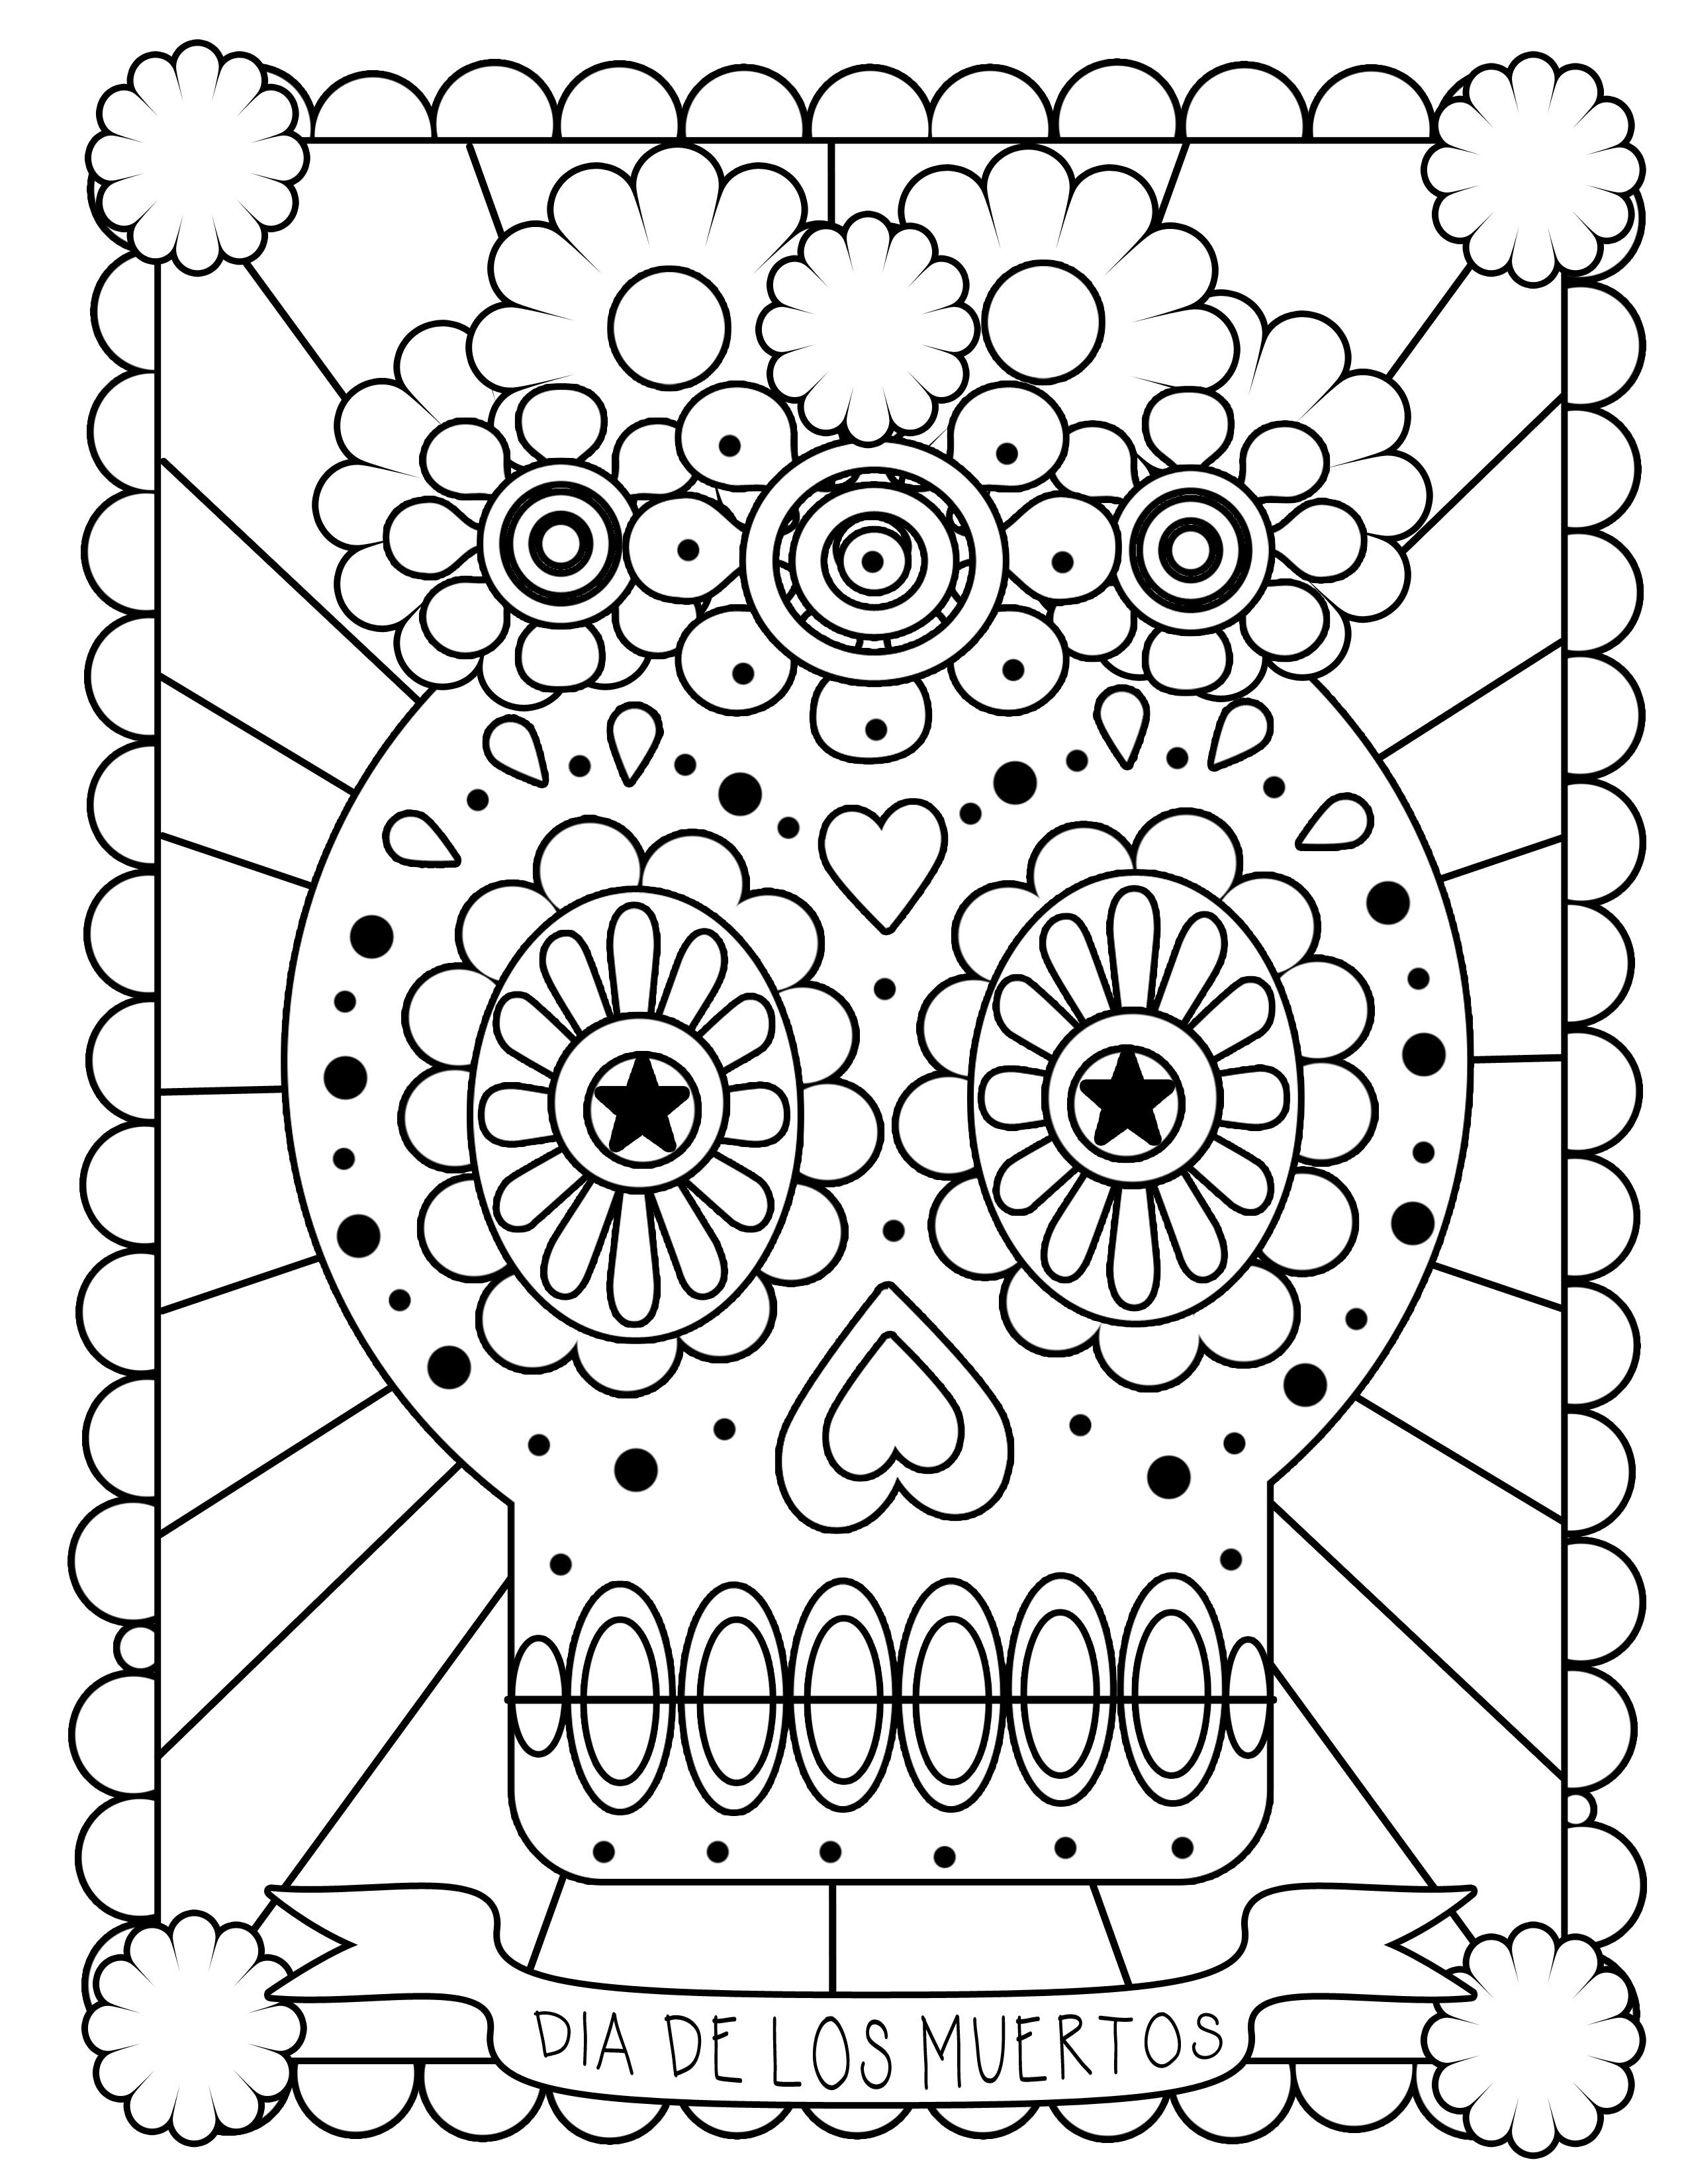 Free Printable Day Of The Dead Coloring Pages - Best Coloring Pages - Free Printable Day Of The Dead Coloring Pages